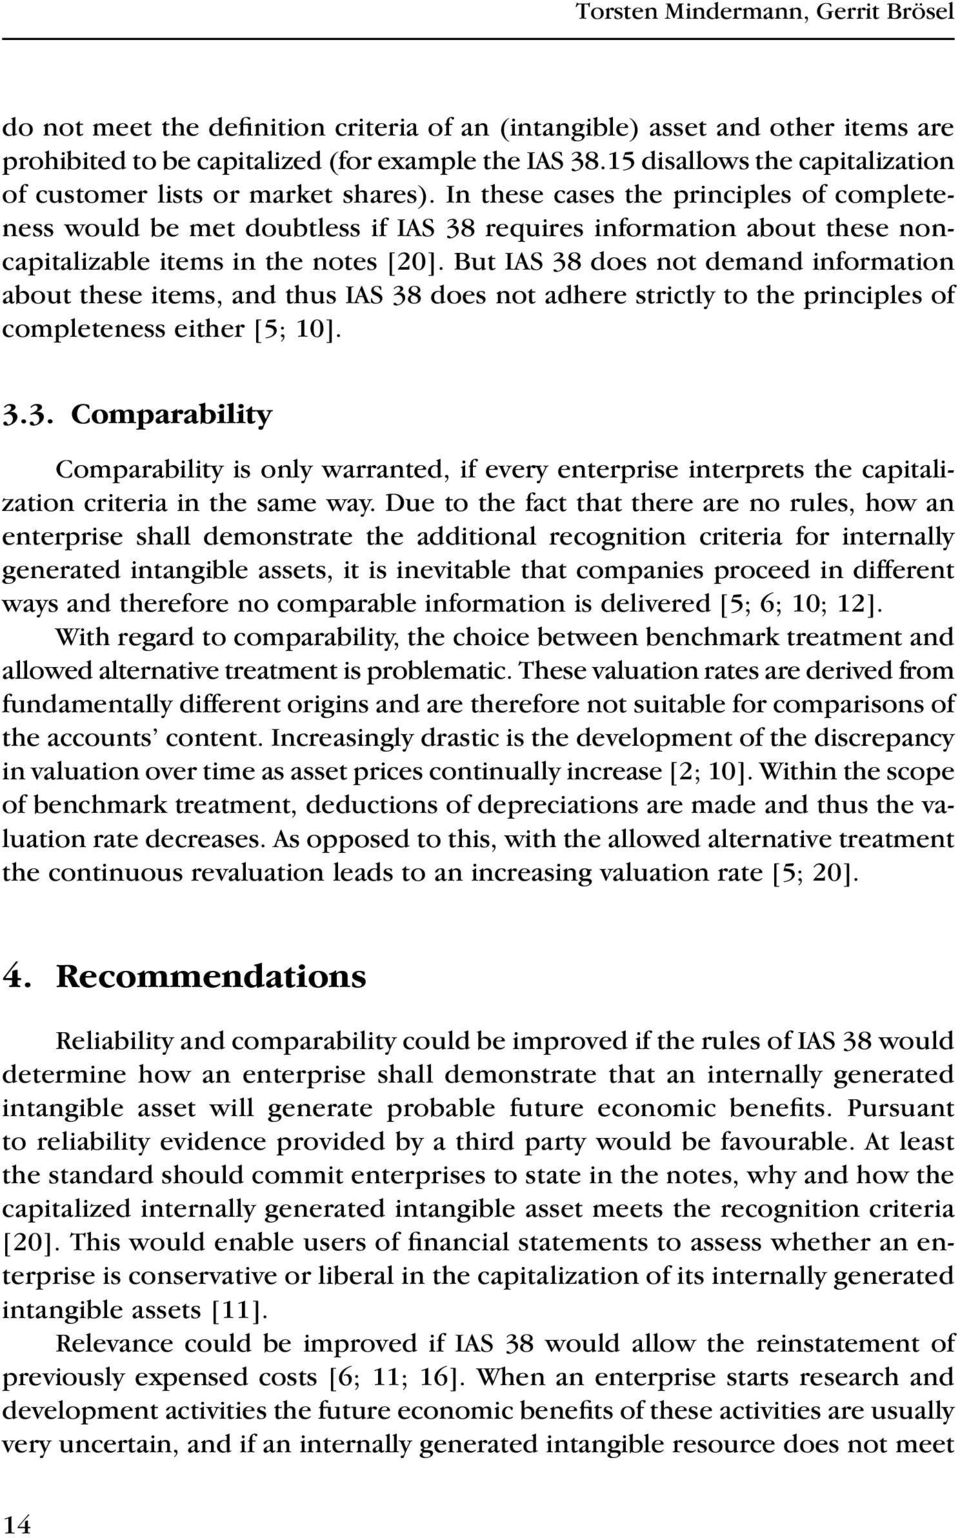 In these cases the principles of completeness would be met doubtless if IAS 38 requires information about these noncapitalizable items in the notes [20].